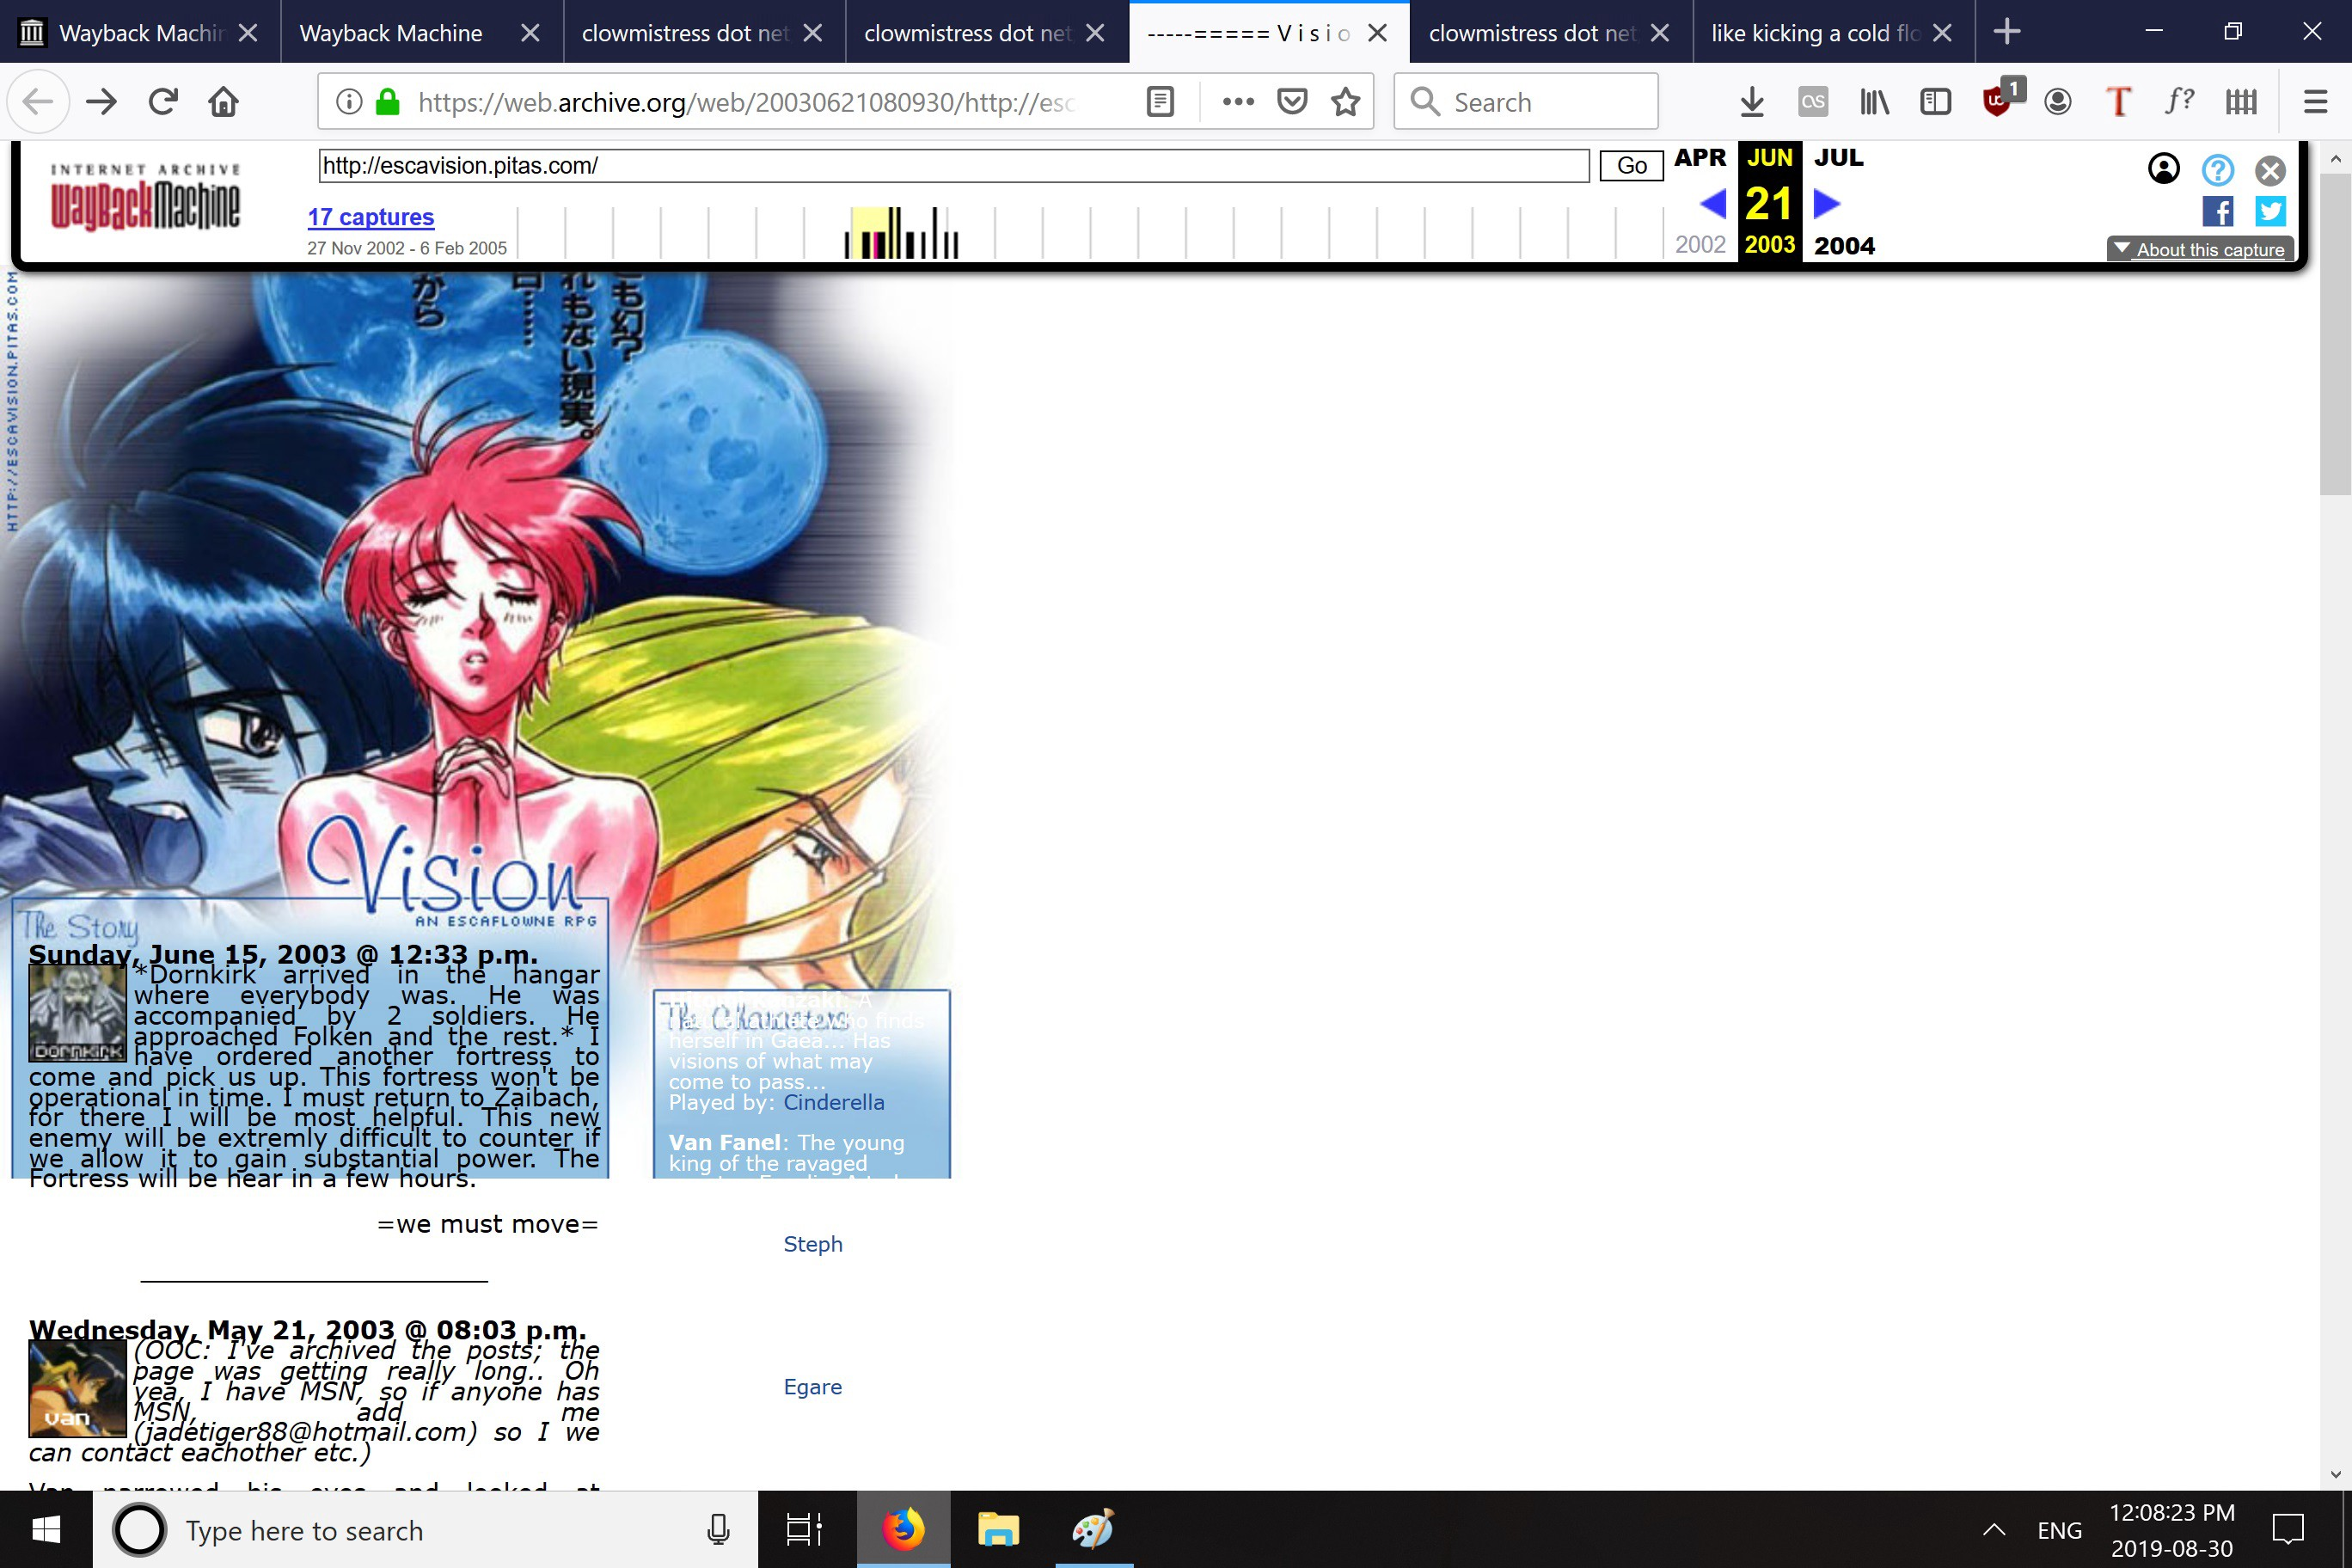 A screenshot of an anime blog site from 2002.